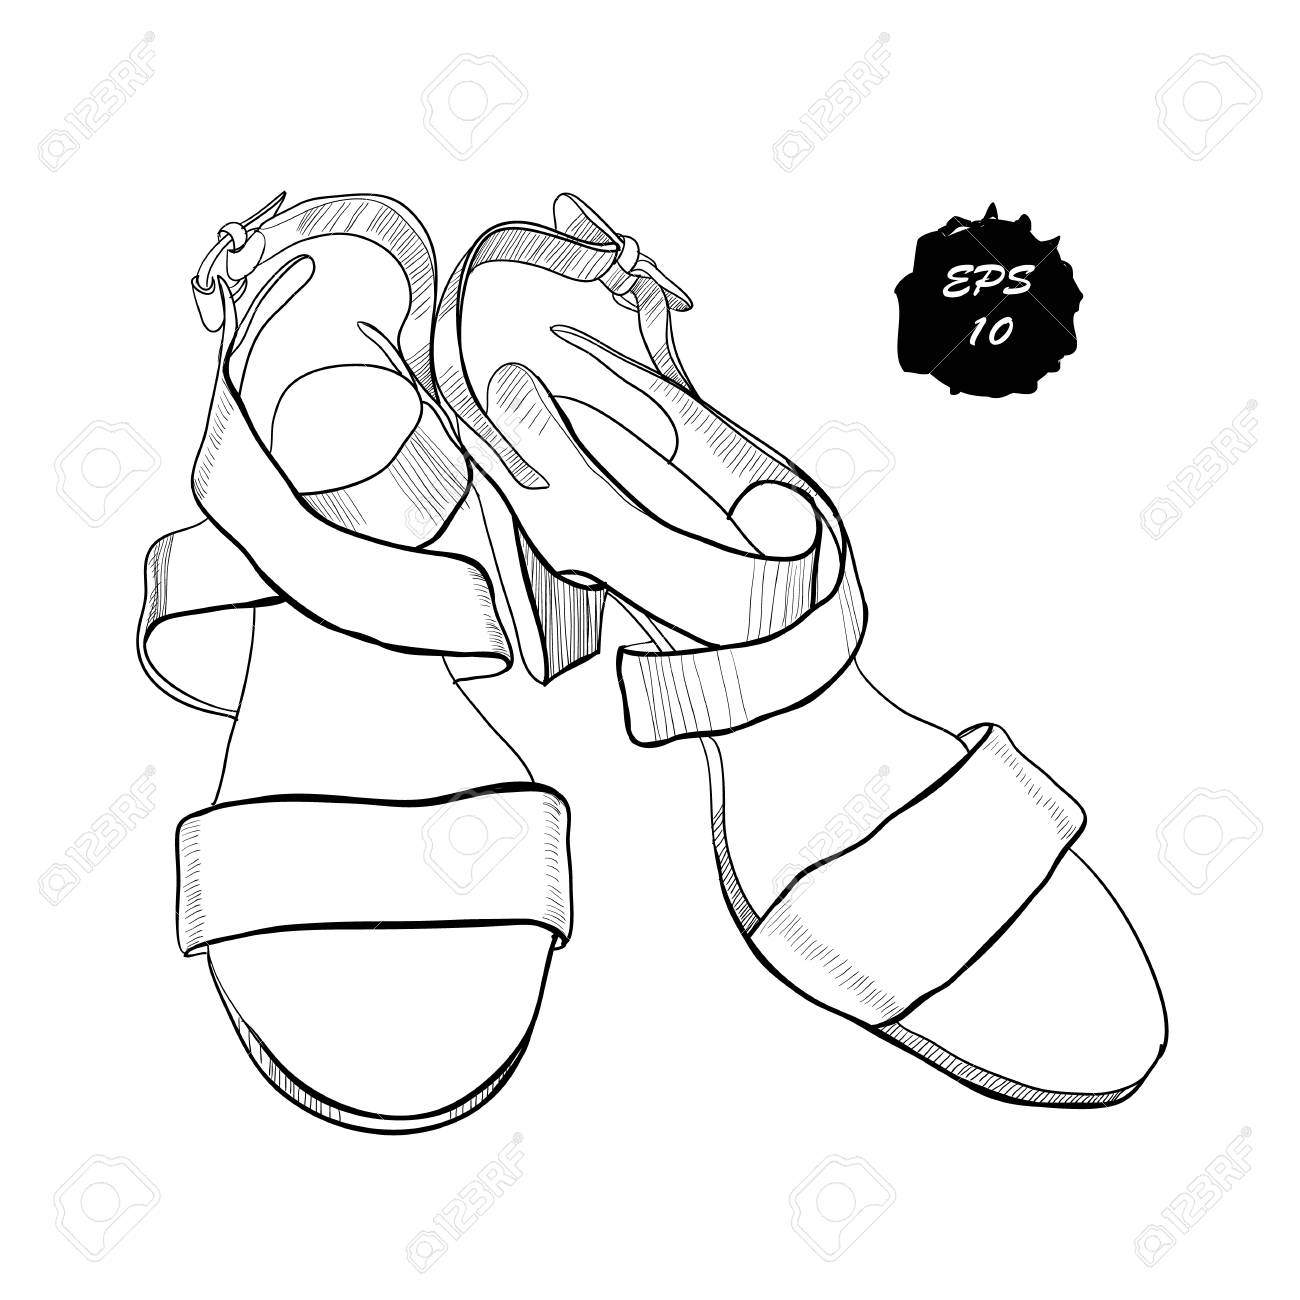 250e8fd0c04ec Illustration of isolated objects sandal shoes. Drawing graphic design for  woman, girl and lady